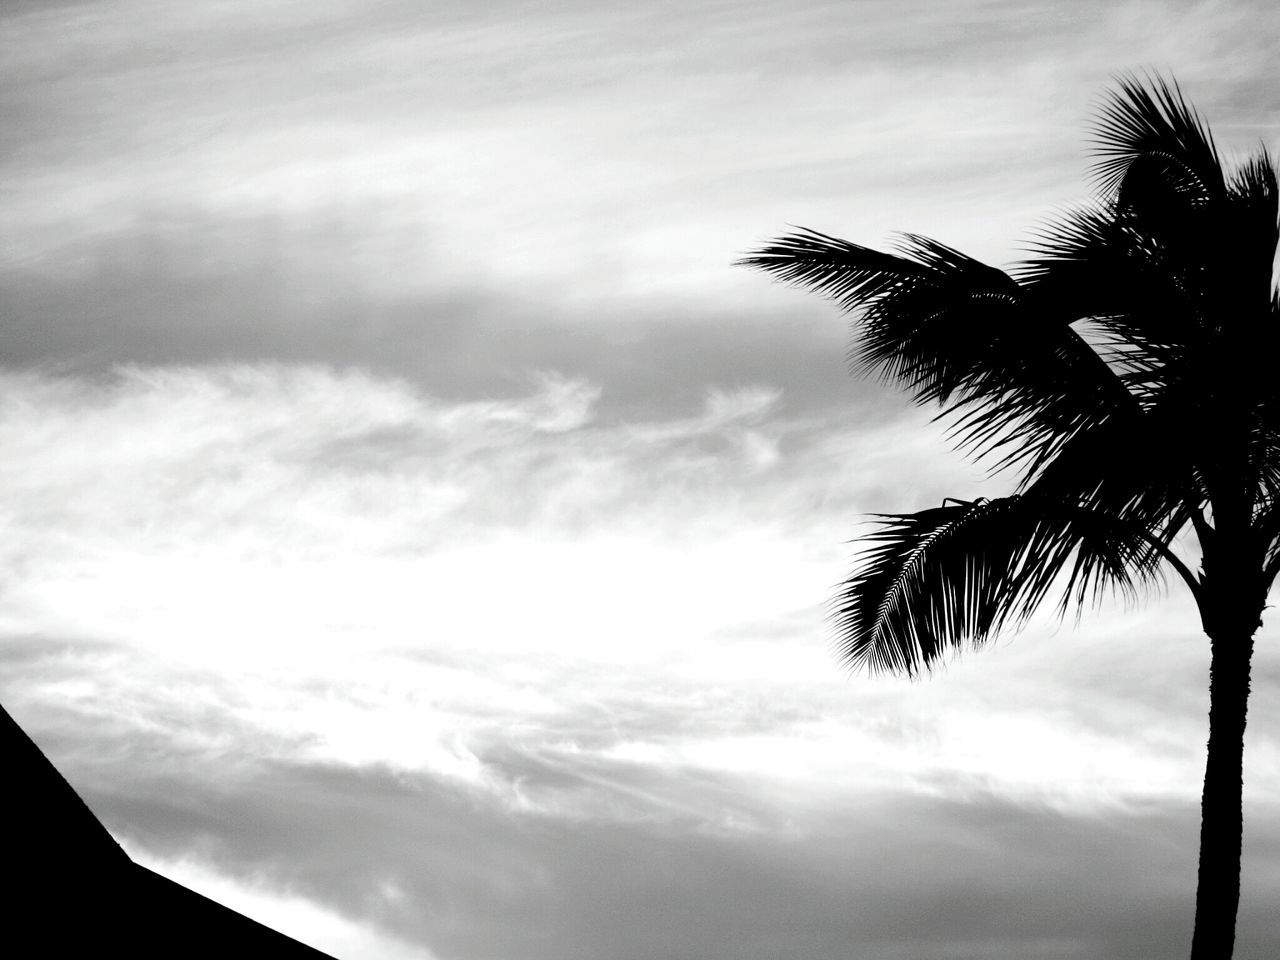 palm tree, sky, tree, cloud - sky, low angle view, no people, beauty in nature, nature, silhouette, palm frond, scenics, outdoors, growth, day